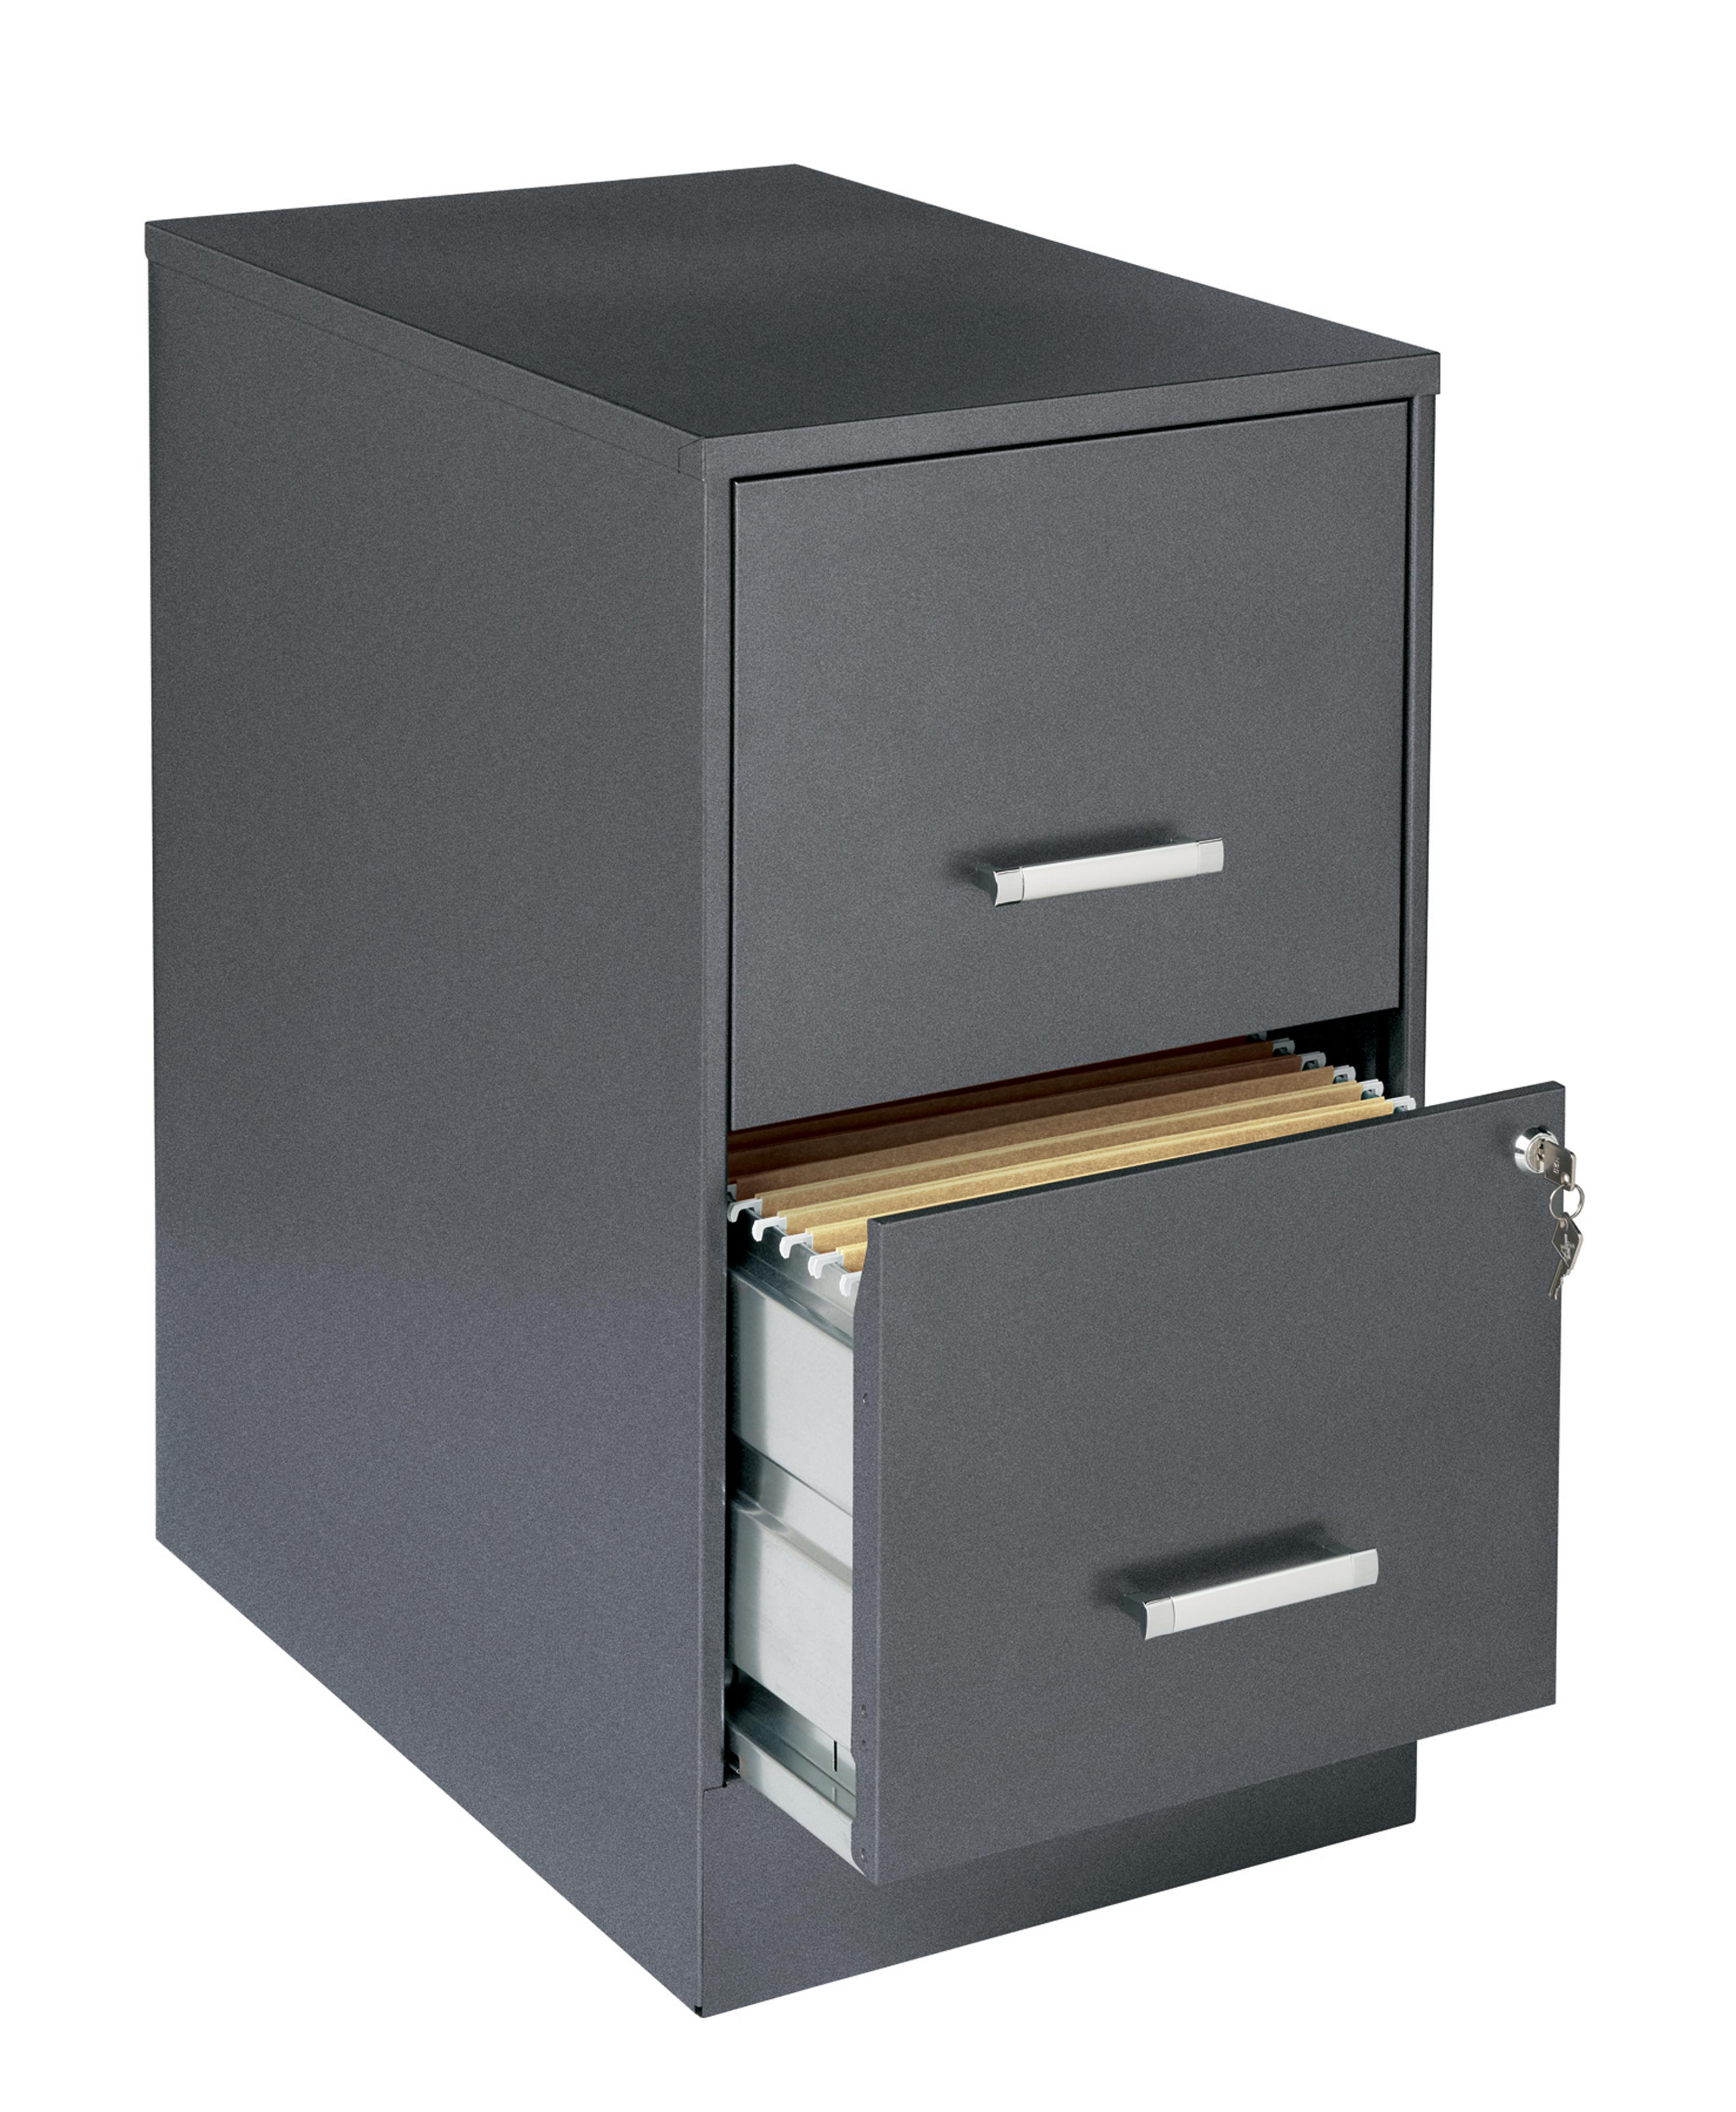 2 Drawer File Cabinet Office Designs Metallic Charcoal Colored 2 Drawer Steel